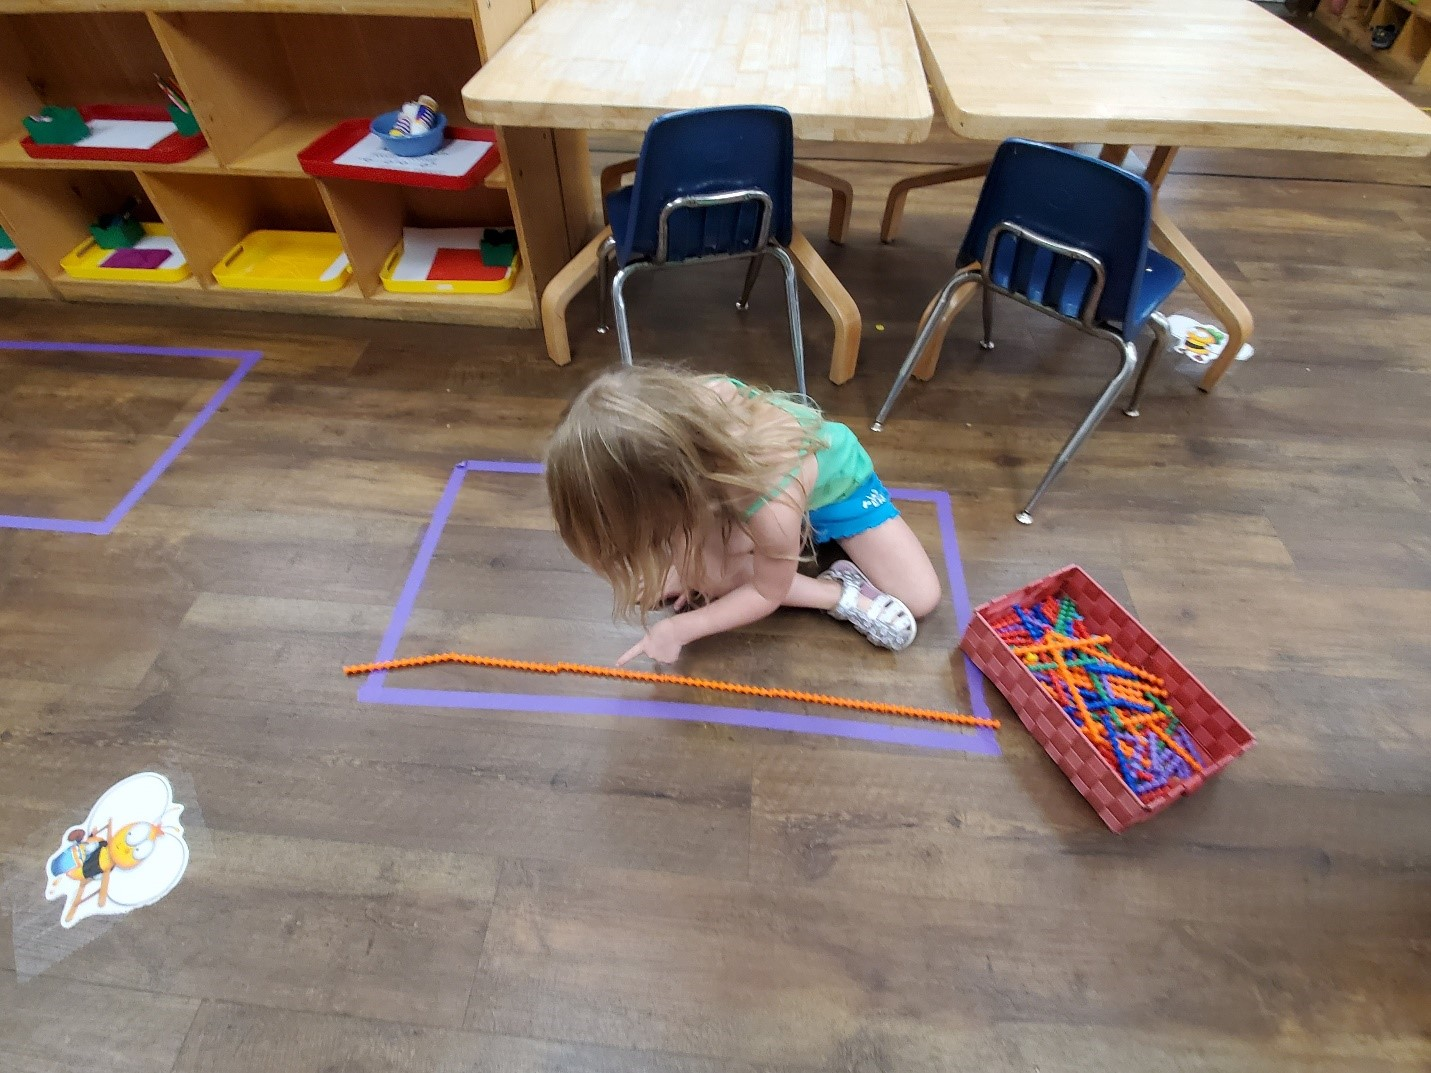 A learner uses manipulatives as a non-standard measurement tool.